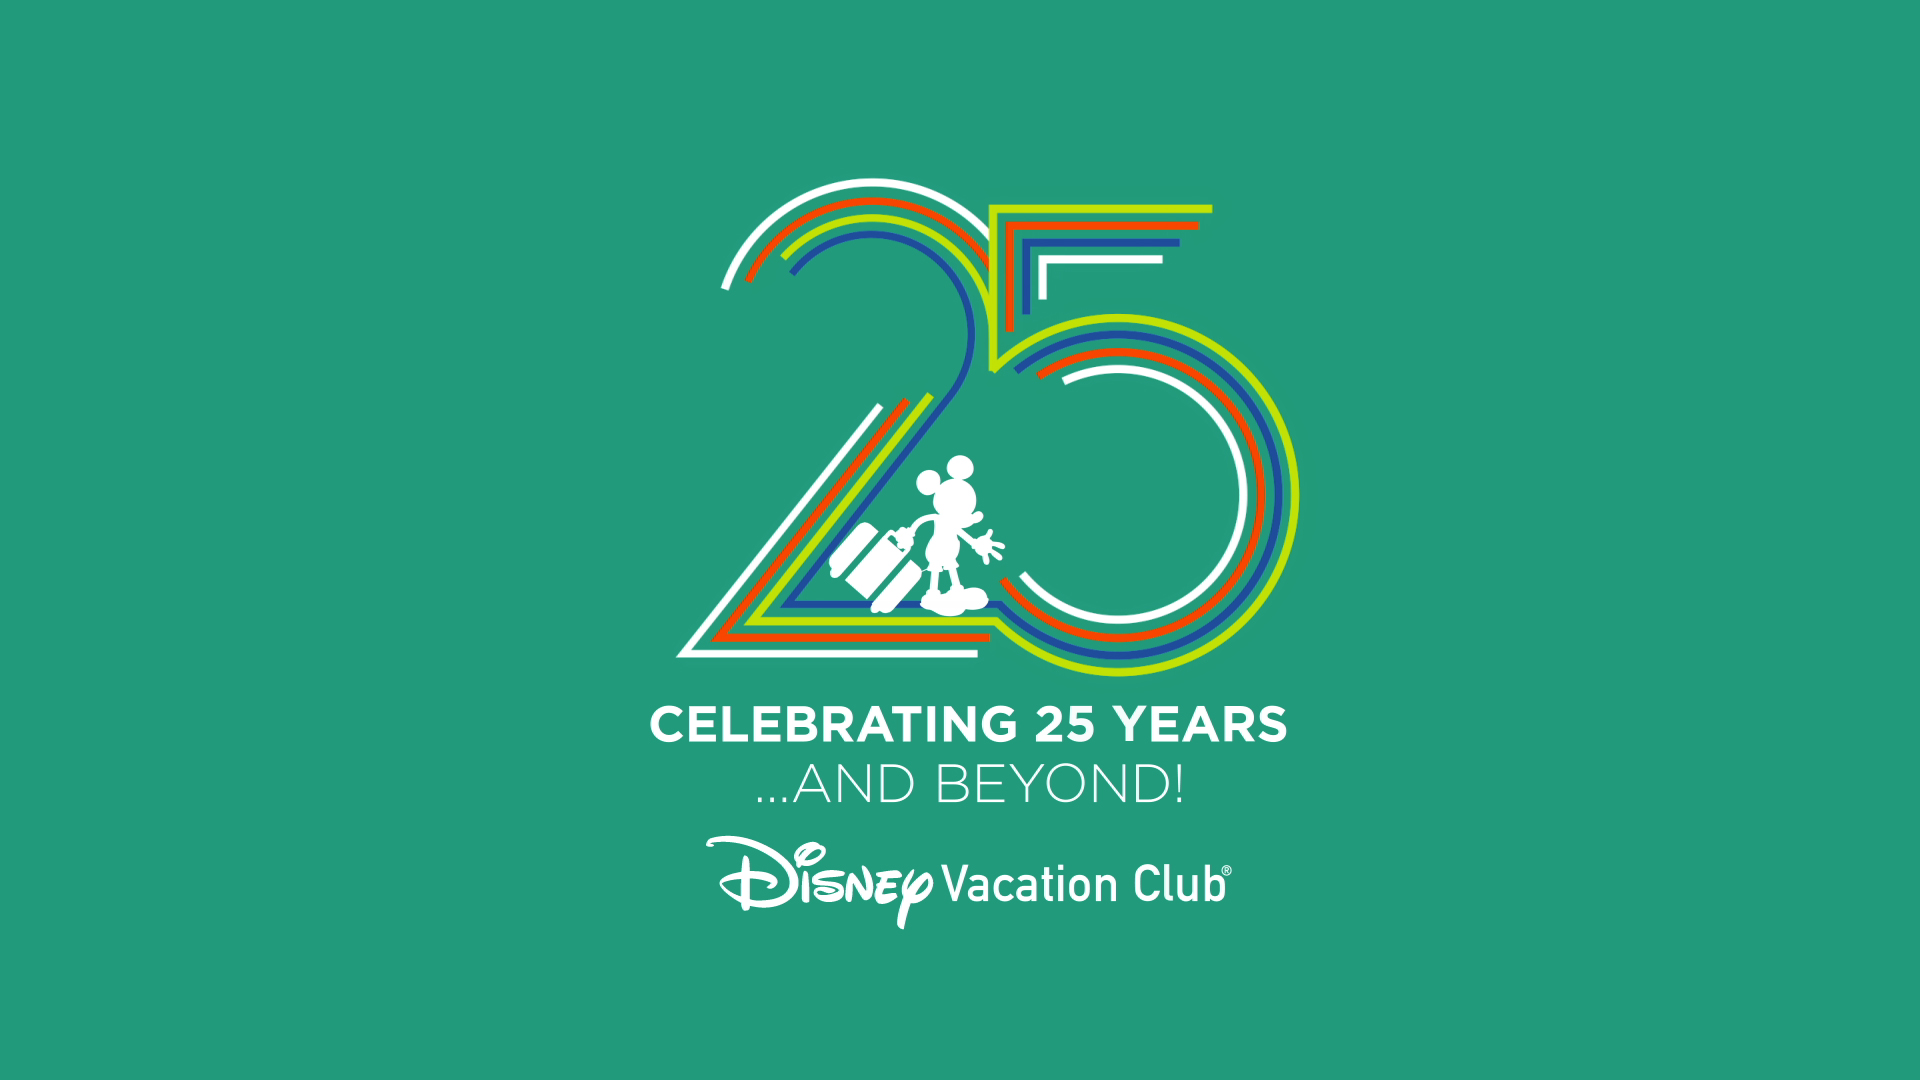 disney vacation club 25th anniversary and beyond